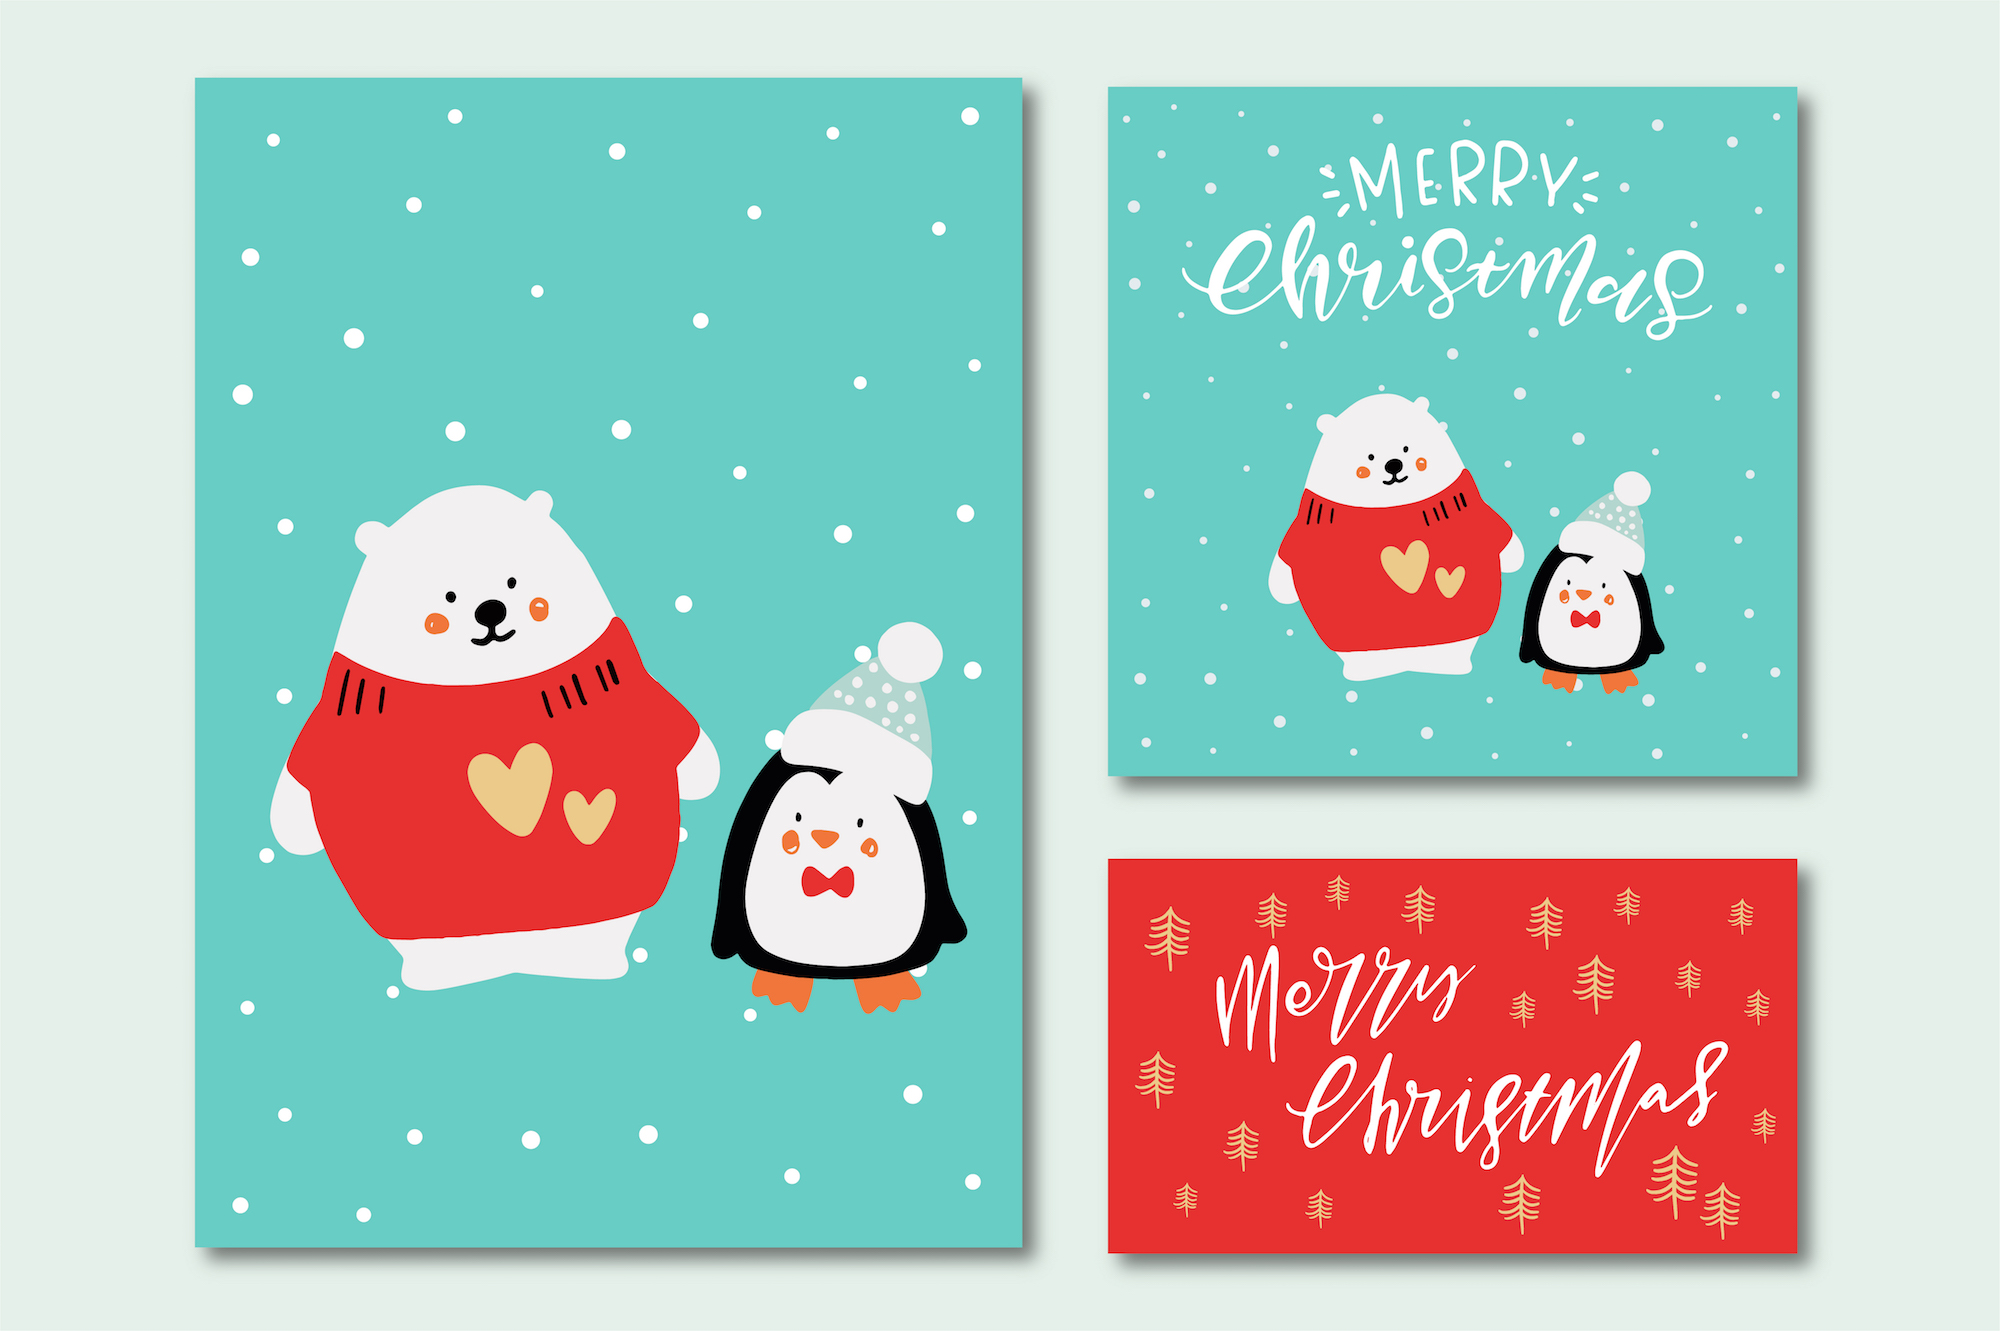 Merry Christmas Characters! example image 2